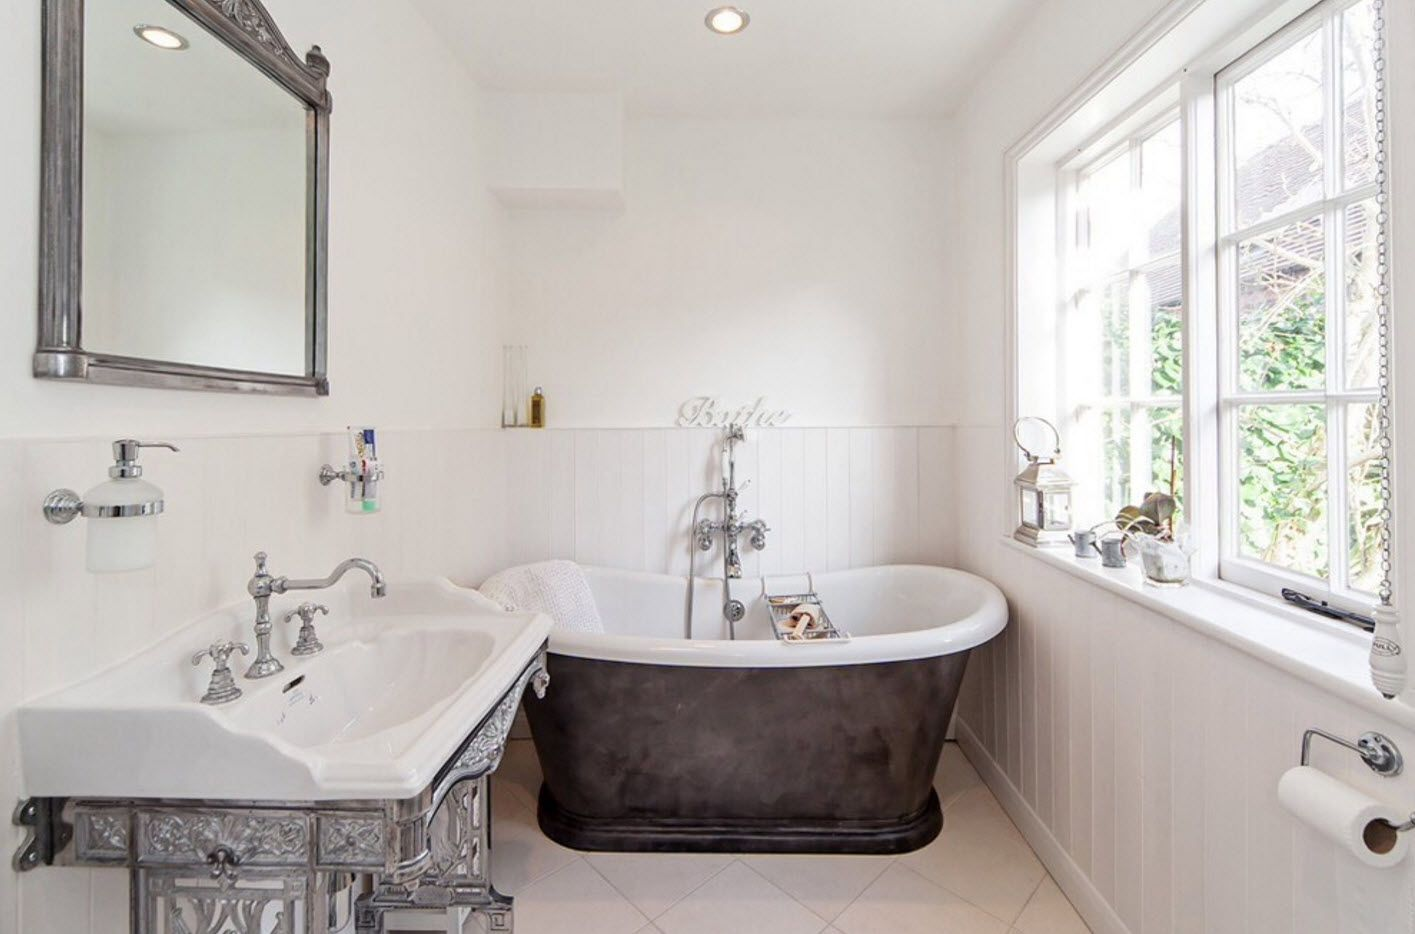 Classic bathtub and sanitary ware in the bathroom